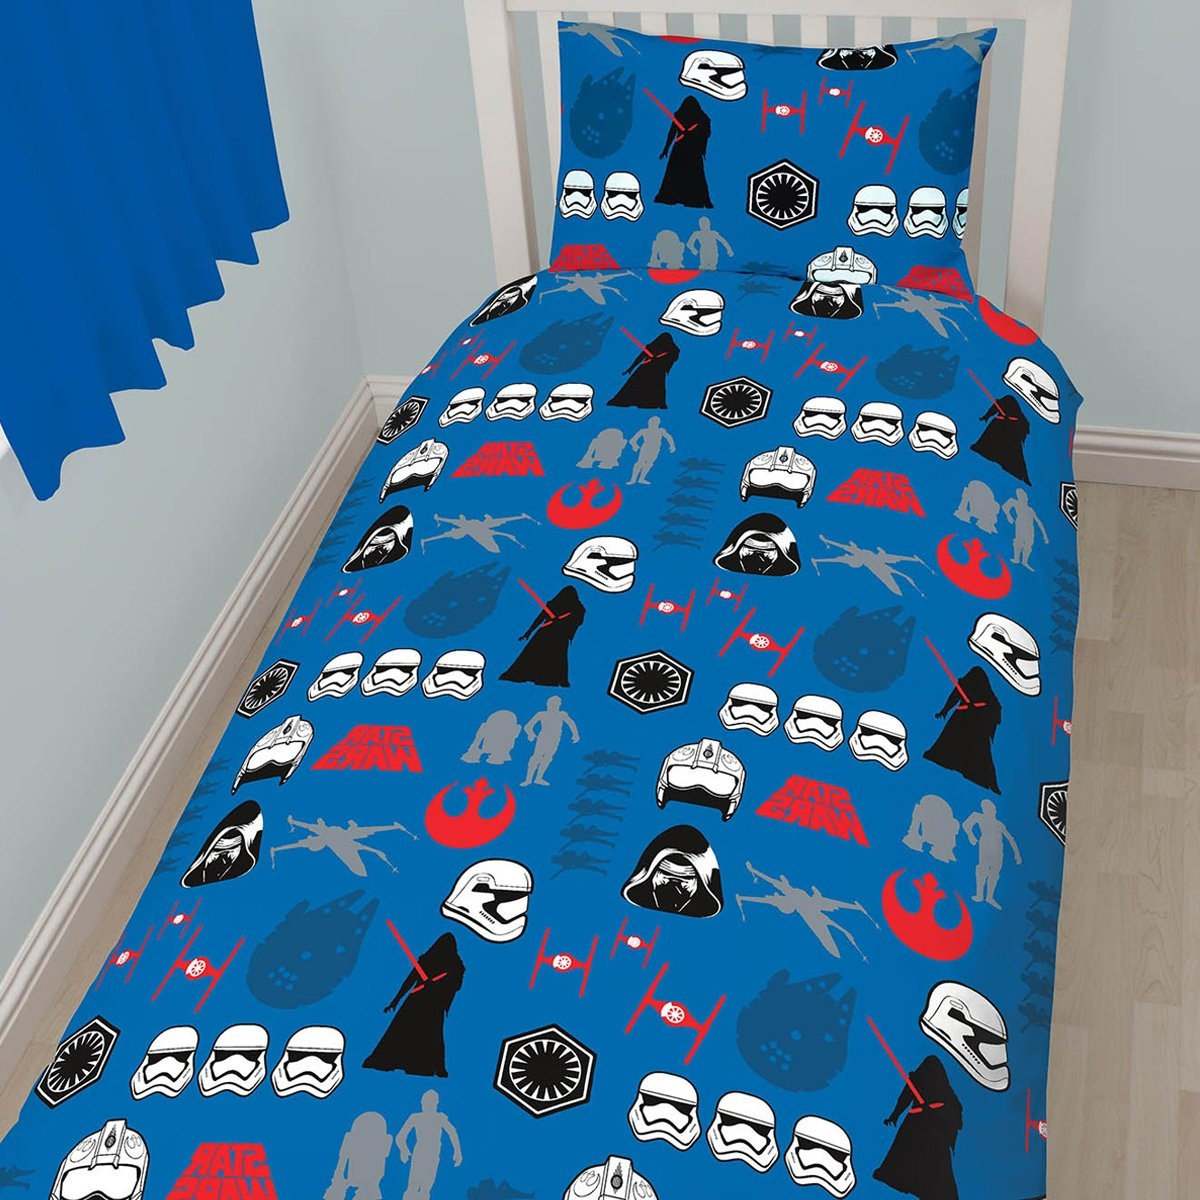 Star Wars 'Crafts' - Reversible Duvet set